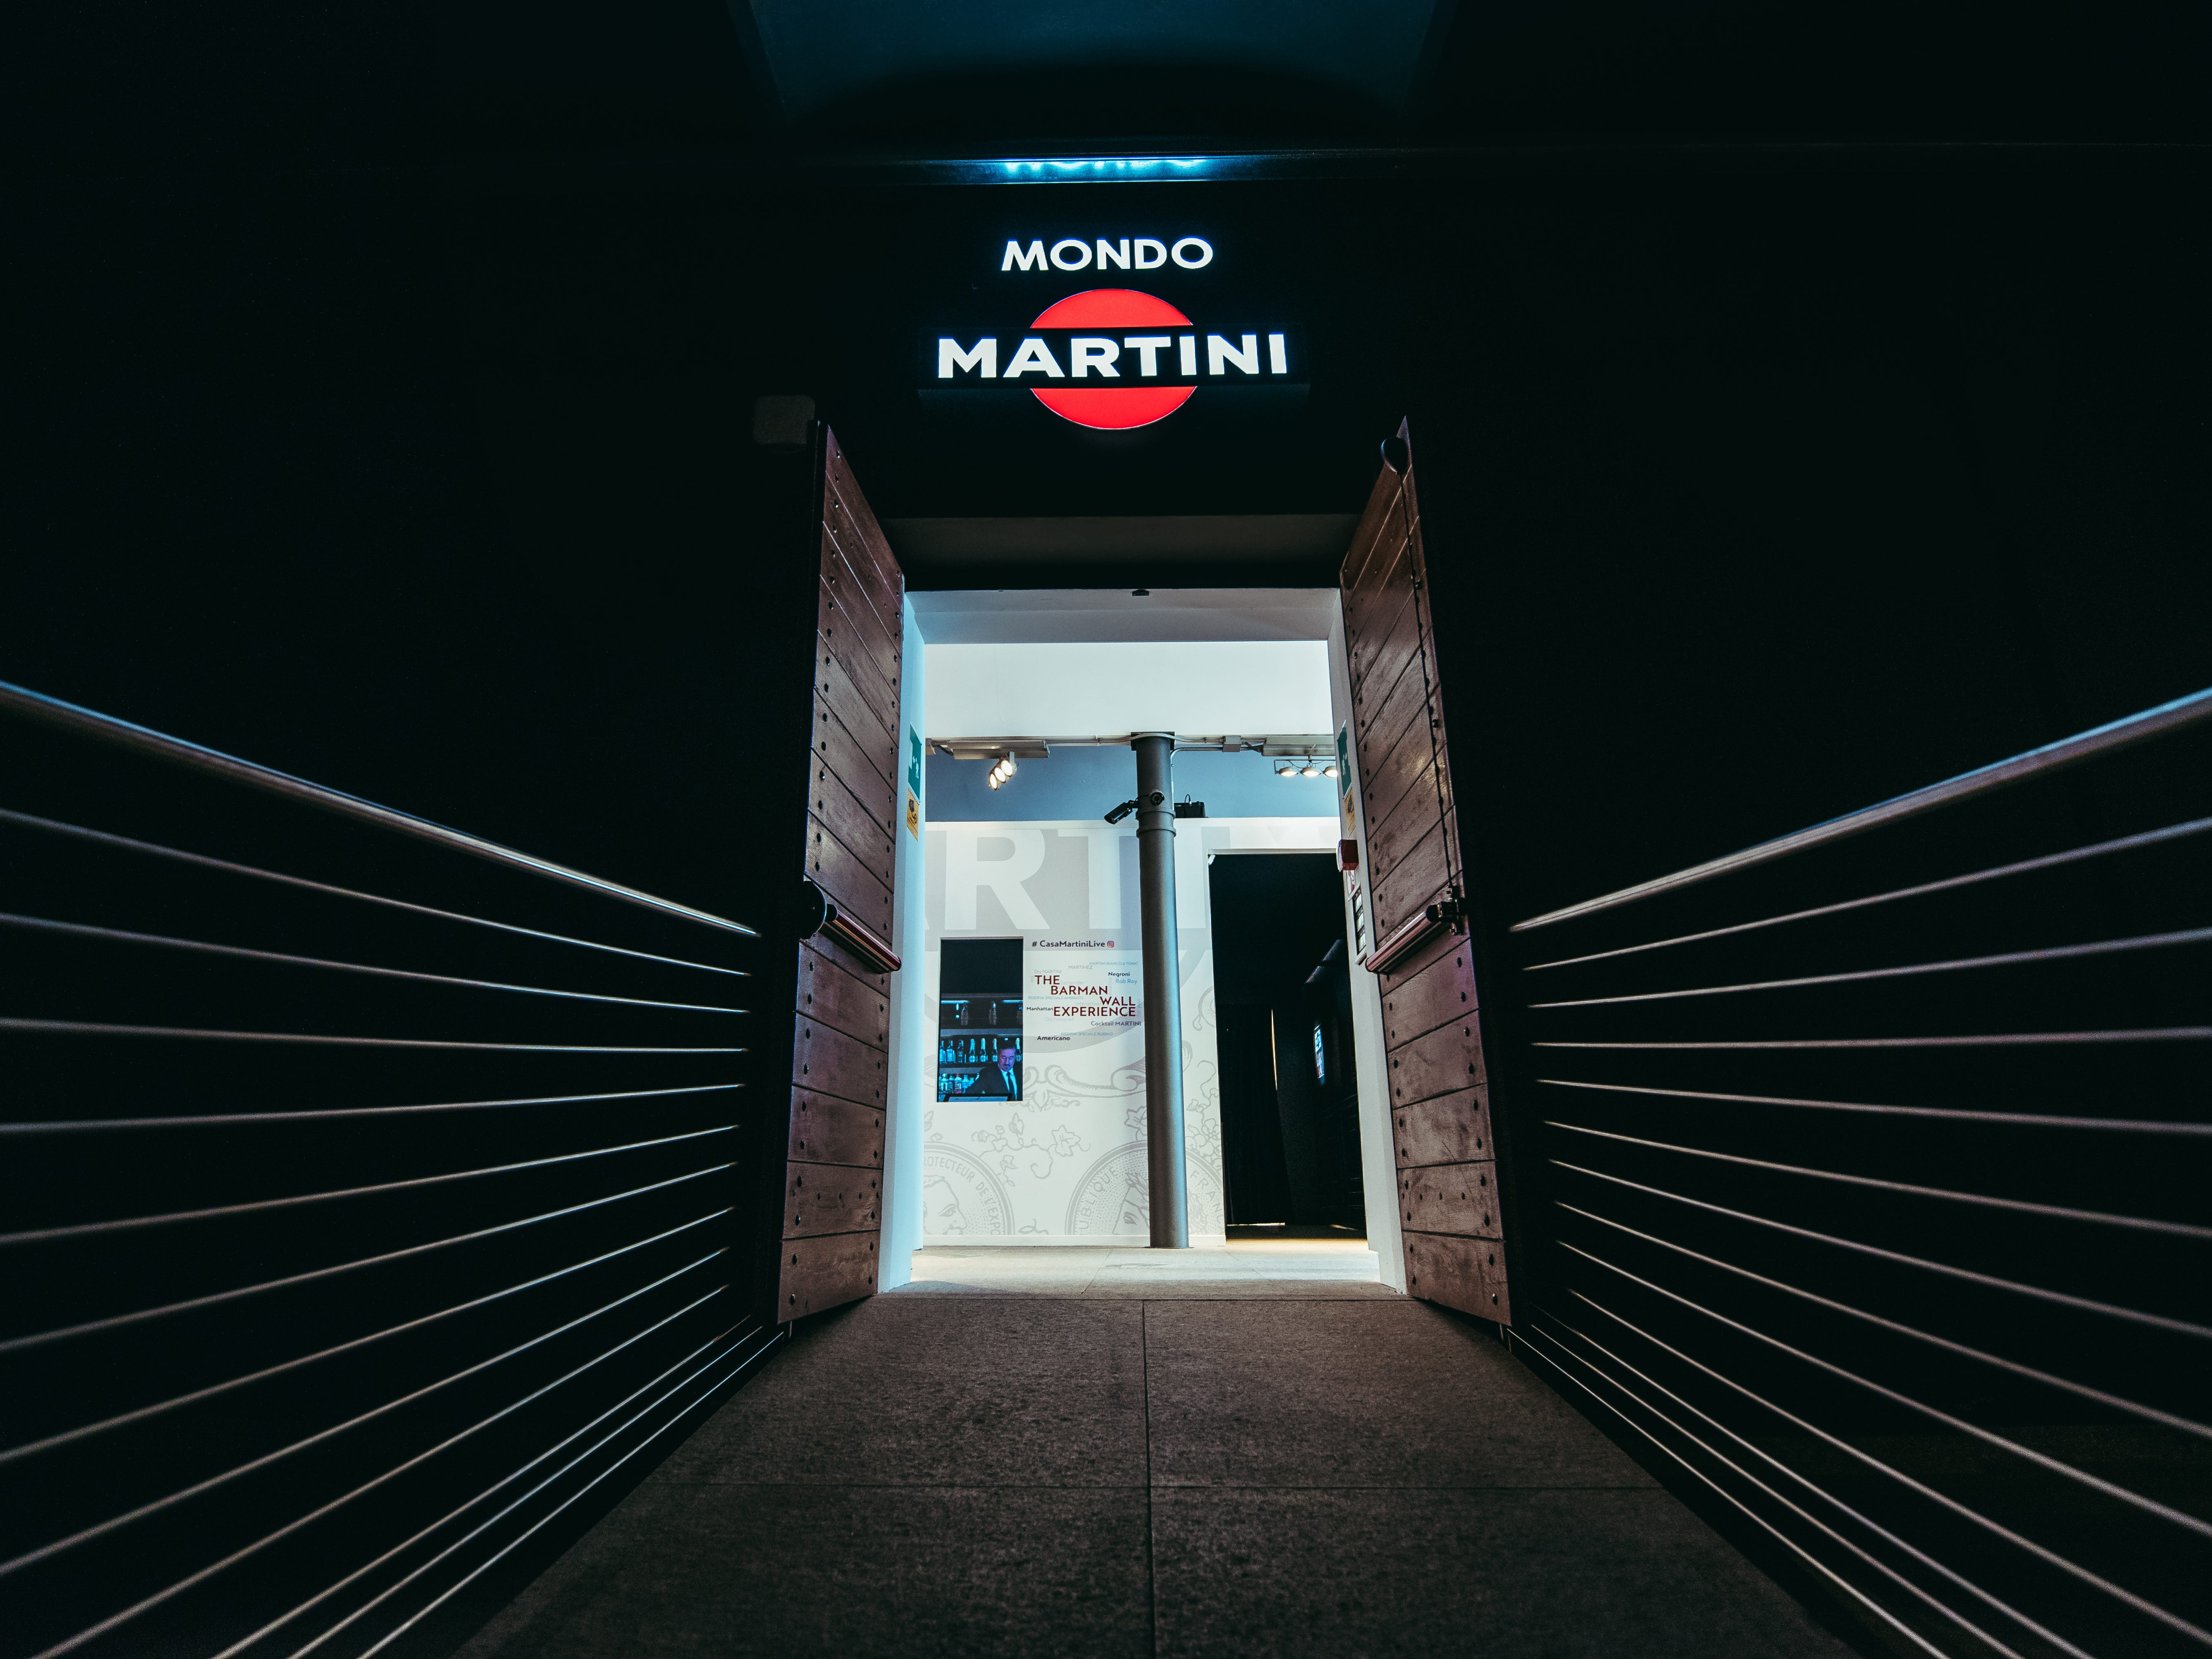 Casa Martini, the site of the brand's production, visitors center and museum, is in Pessione, Italy, 45 minutes outside of Turin. The company was founded in 1863 and moved to its current location a year later.